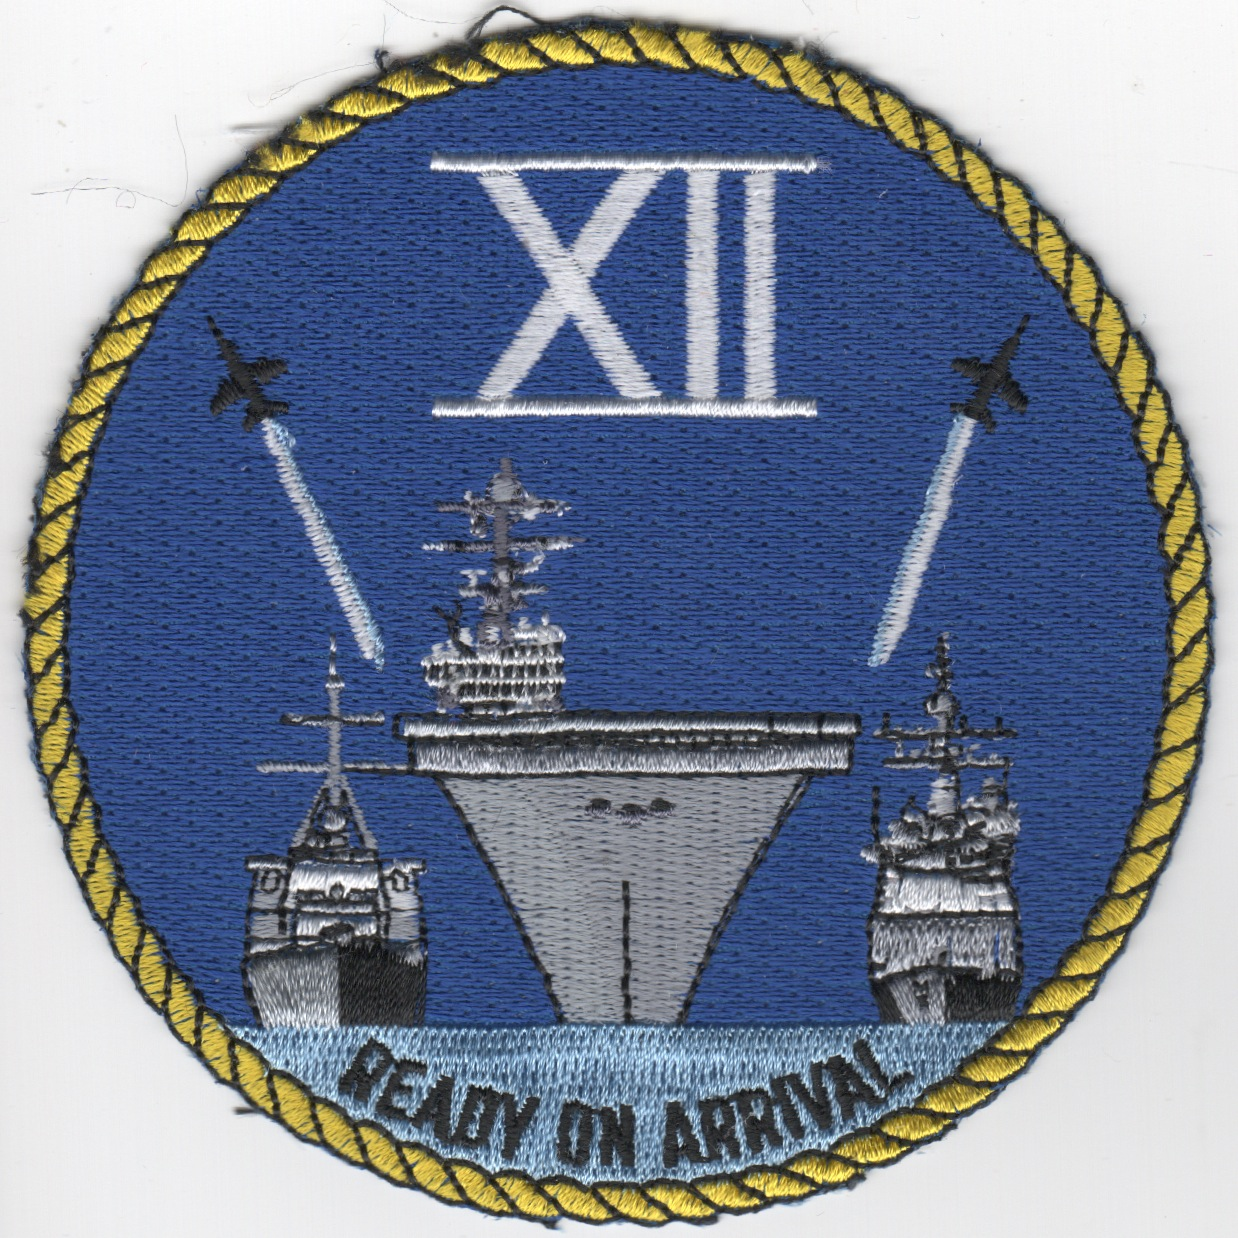 CSG TWELVE 'Ready On Arrival' Patch